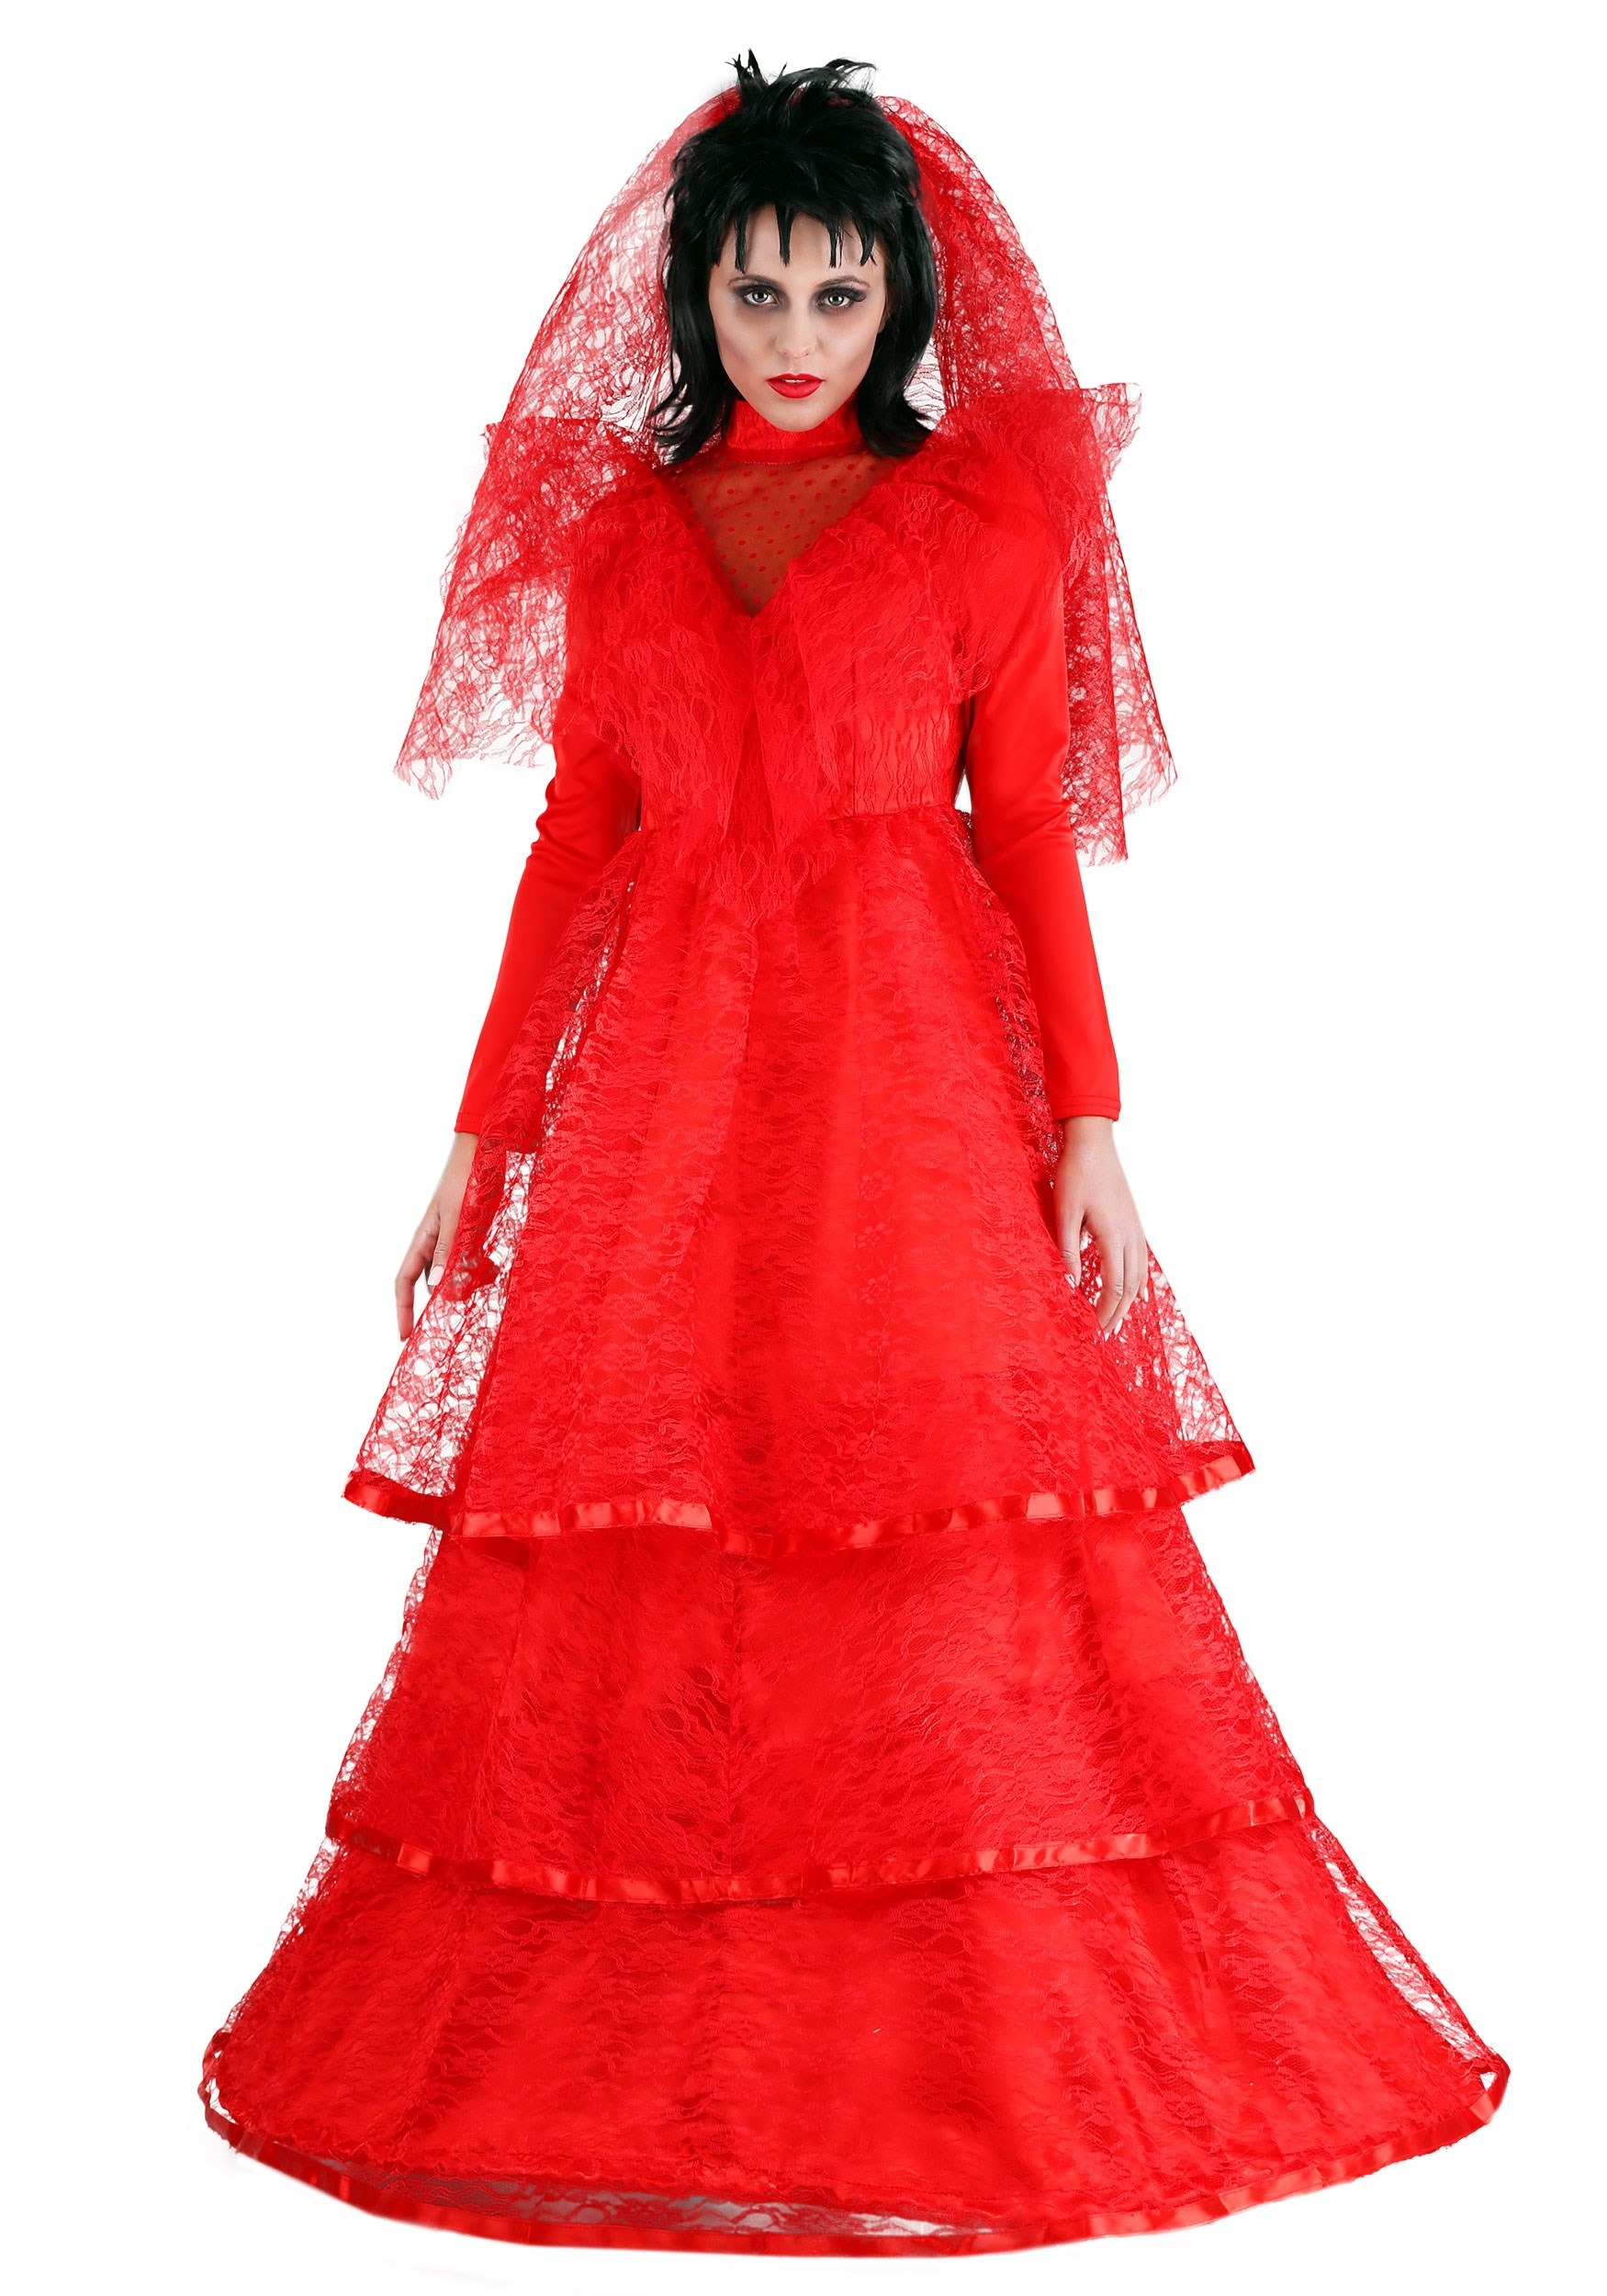 bdd6718bb3bf Plus Size Red Gothic Wedding Dress Costume update